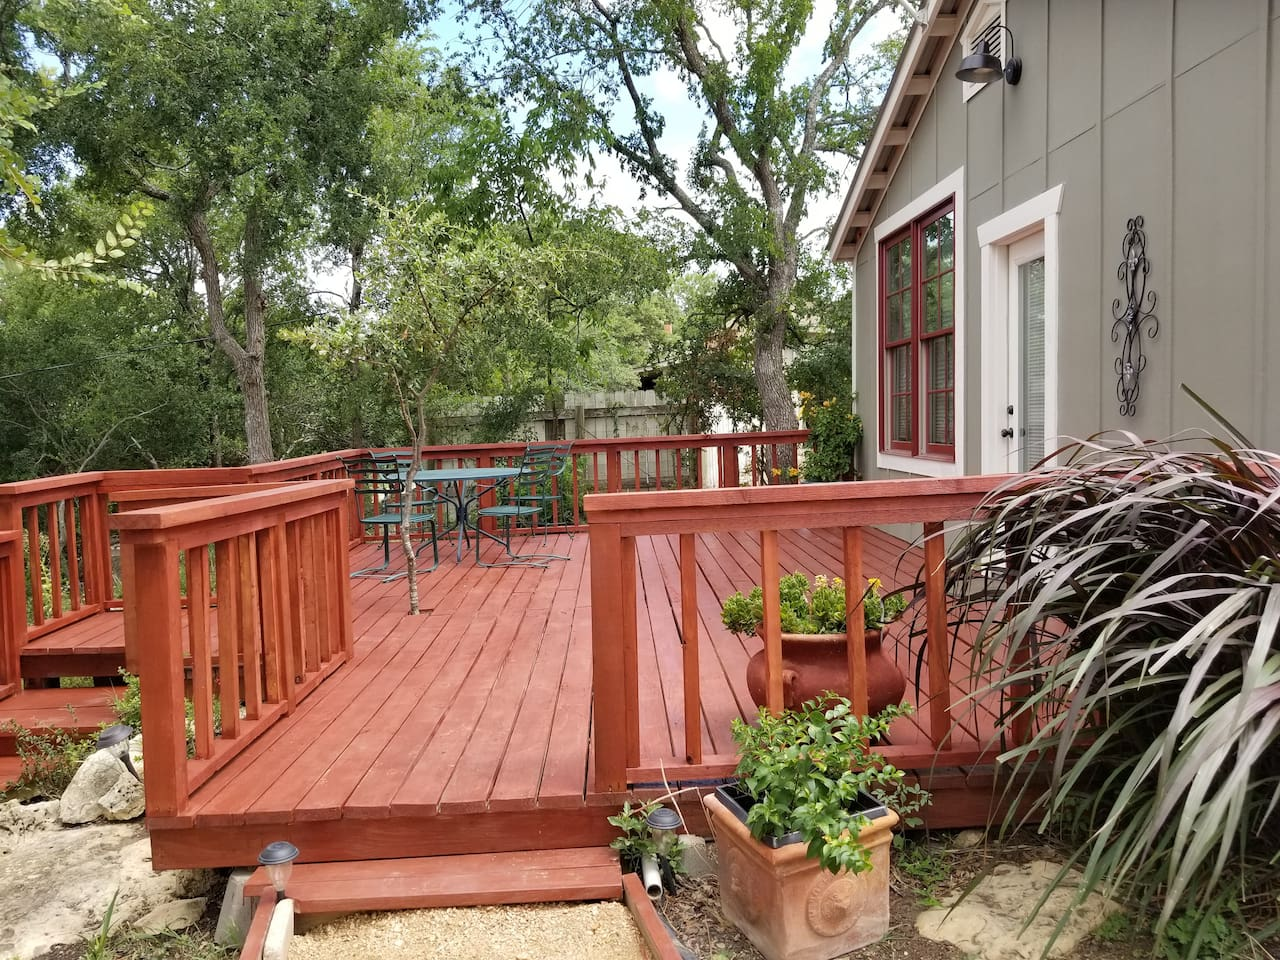 New deck with table and seating